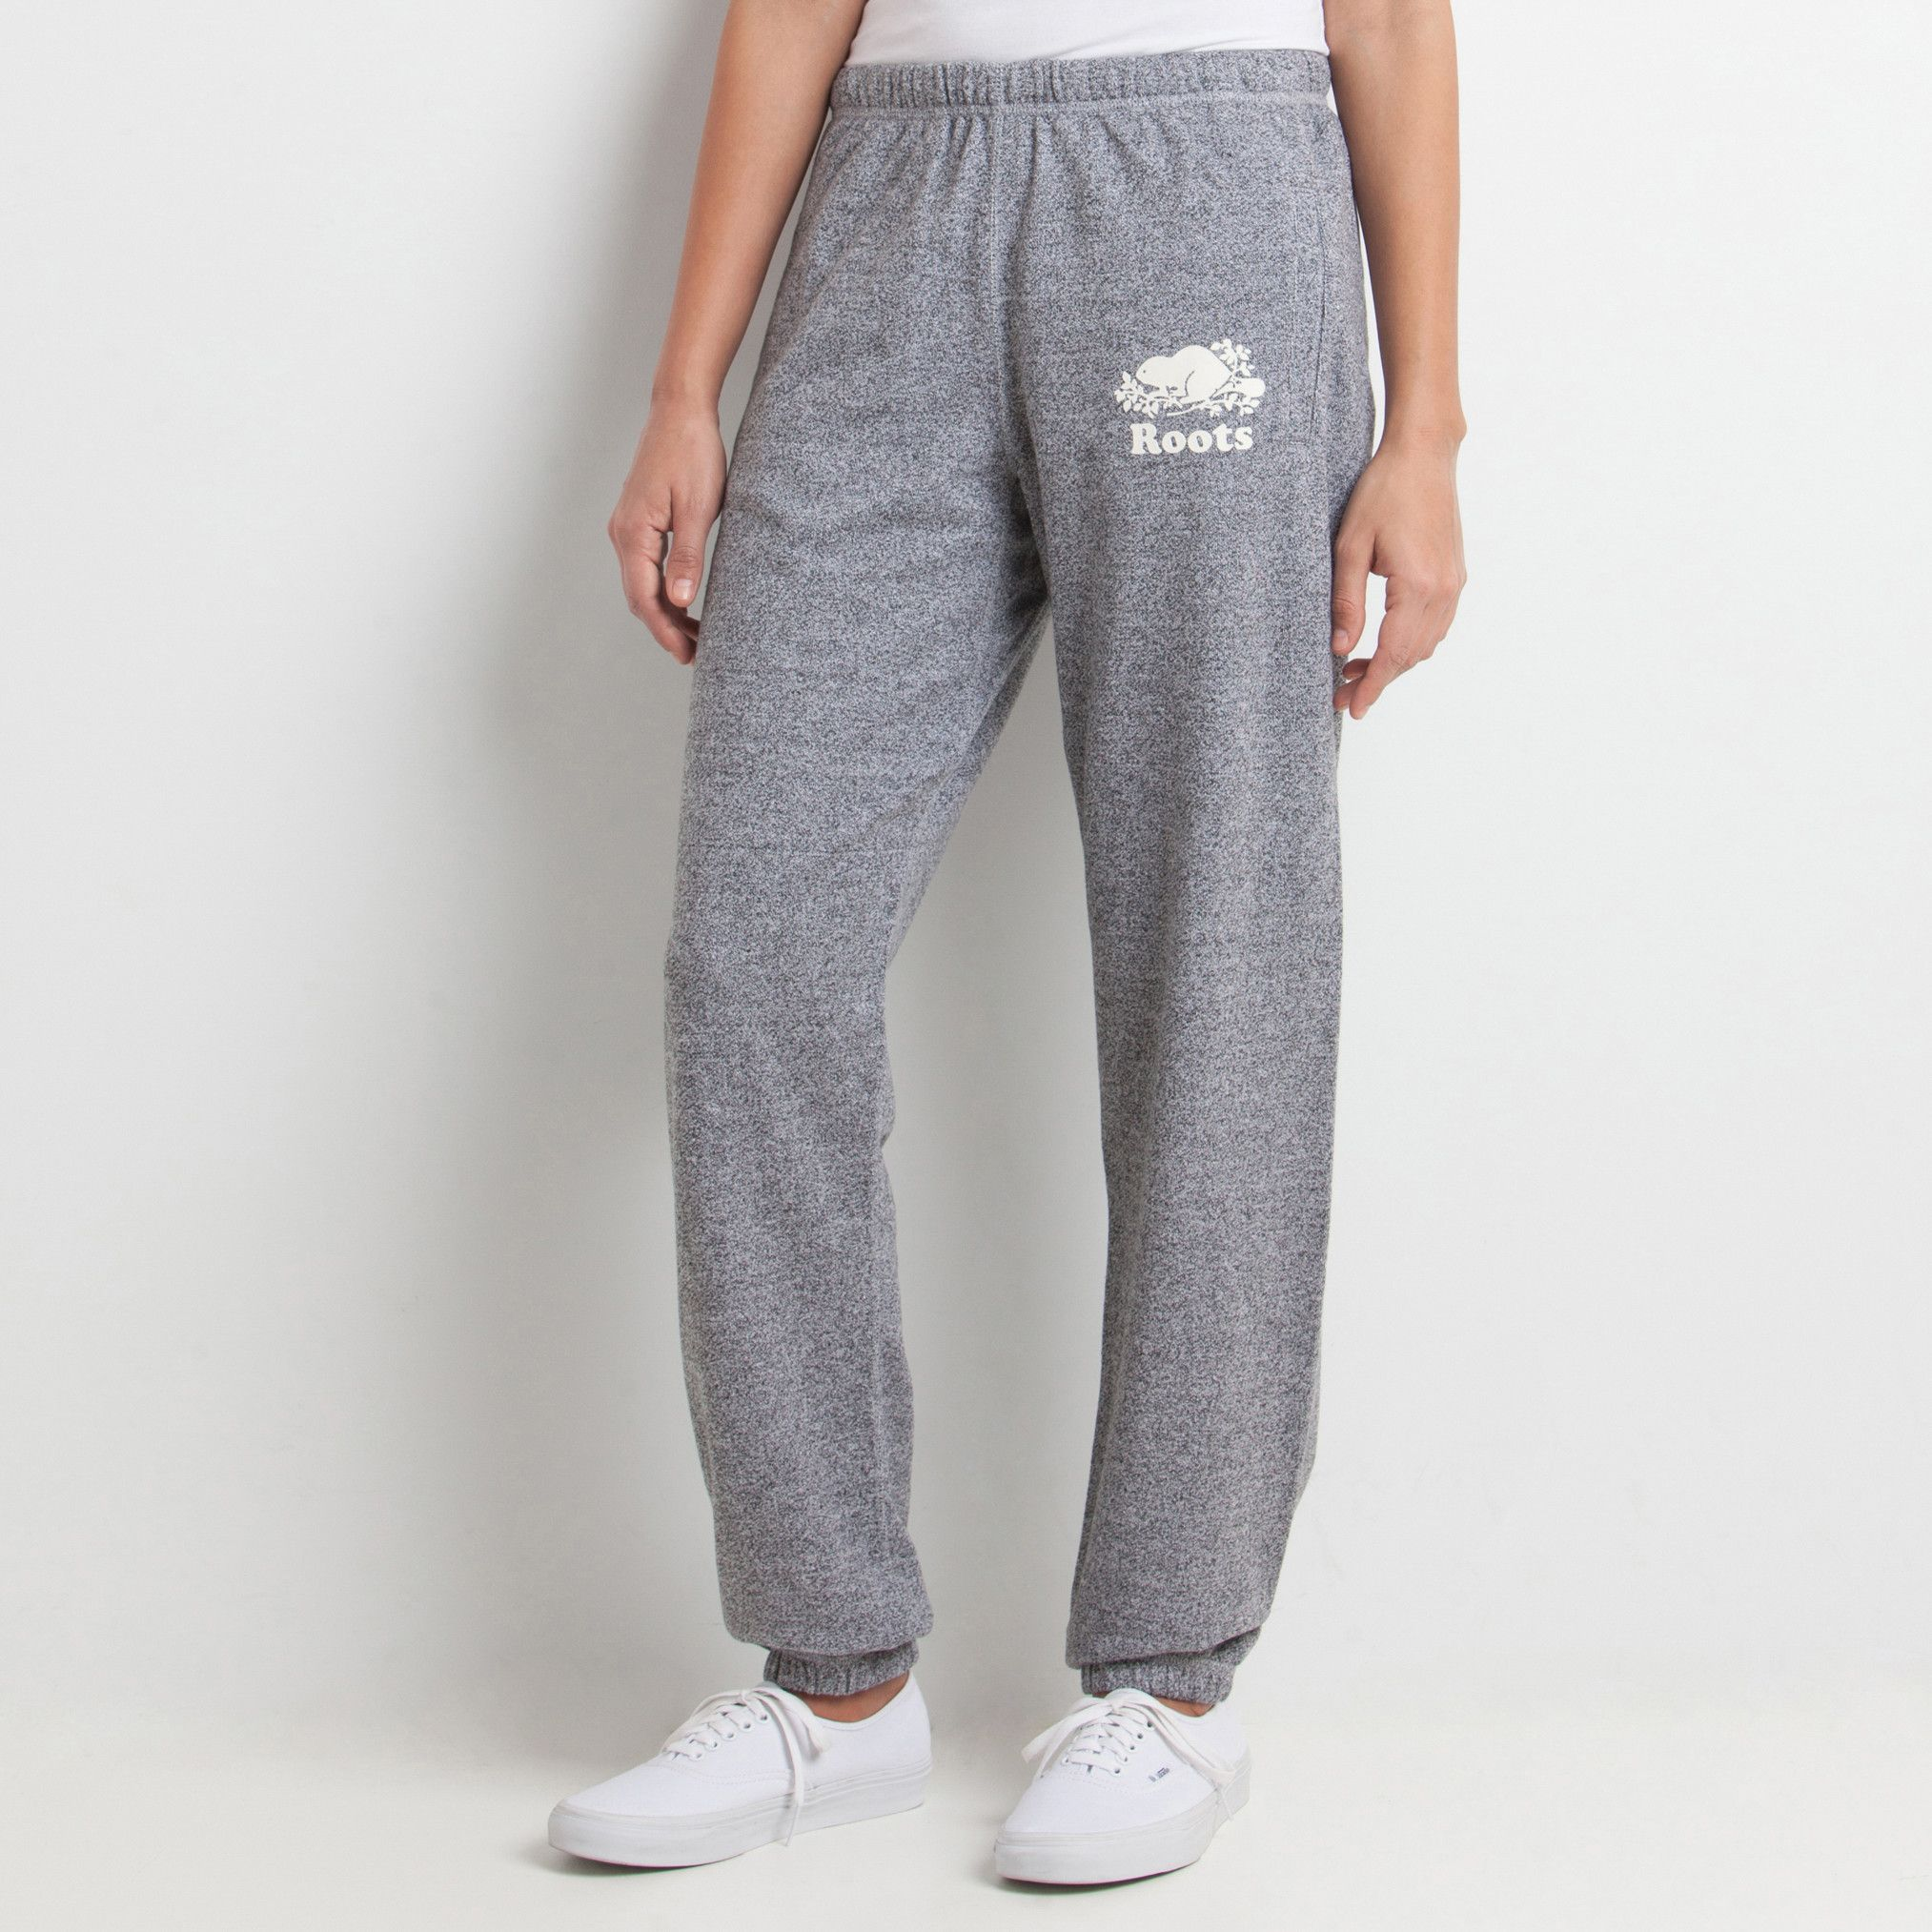 a733e80783415f Pocket Original Sweatpant Roots | Roots Sweatpants for Women ...